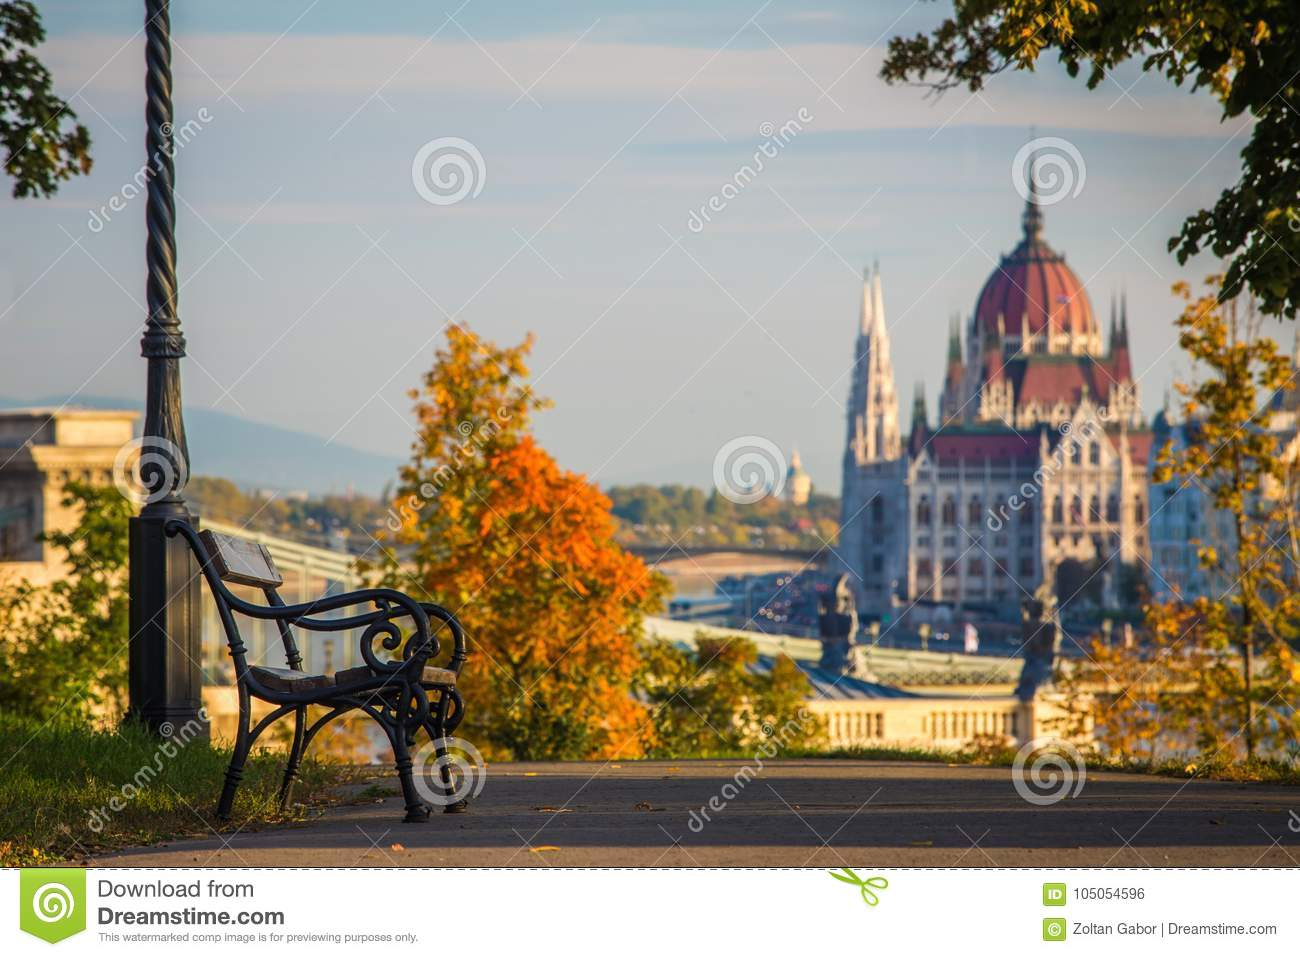 Budapest, Hungary - Bench and autumn foliage on the Buda hill with the Hungarian Parliament